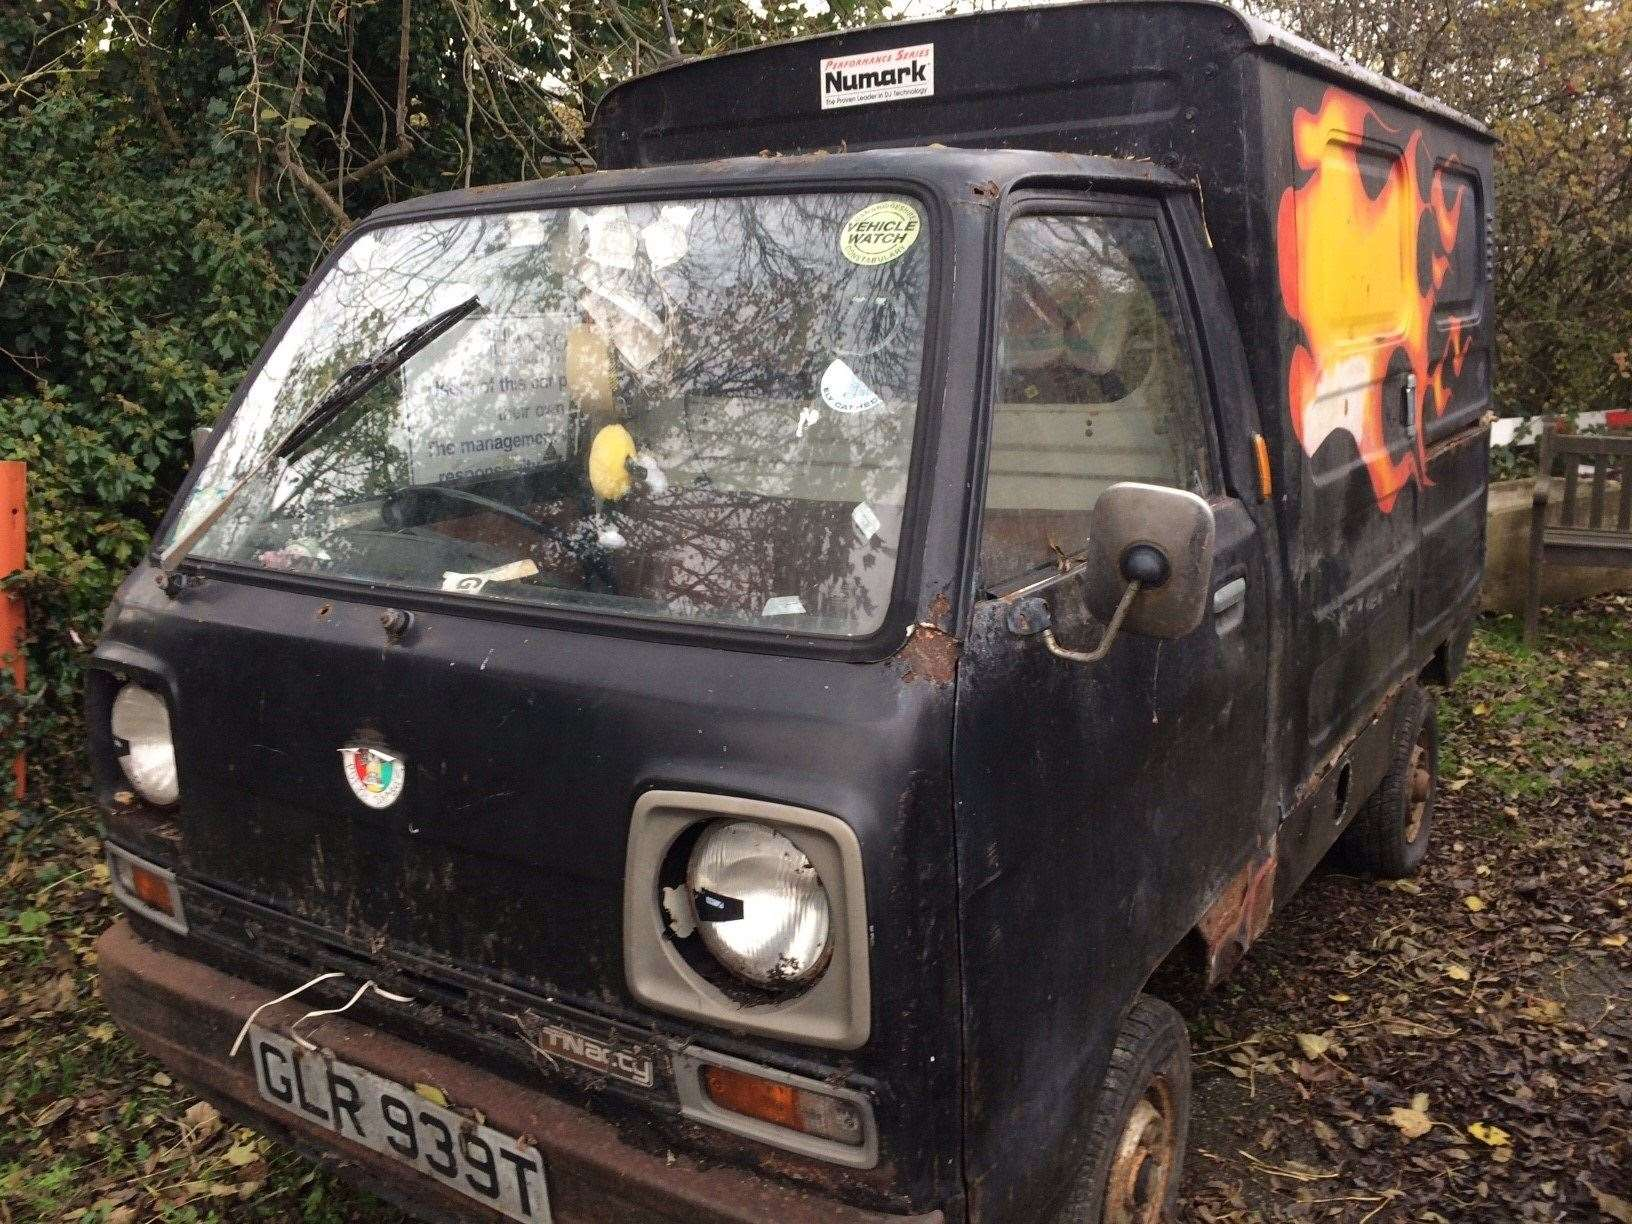 Sooty Mobile sold for £1,100 at auction (22196670)